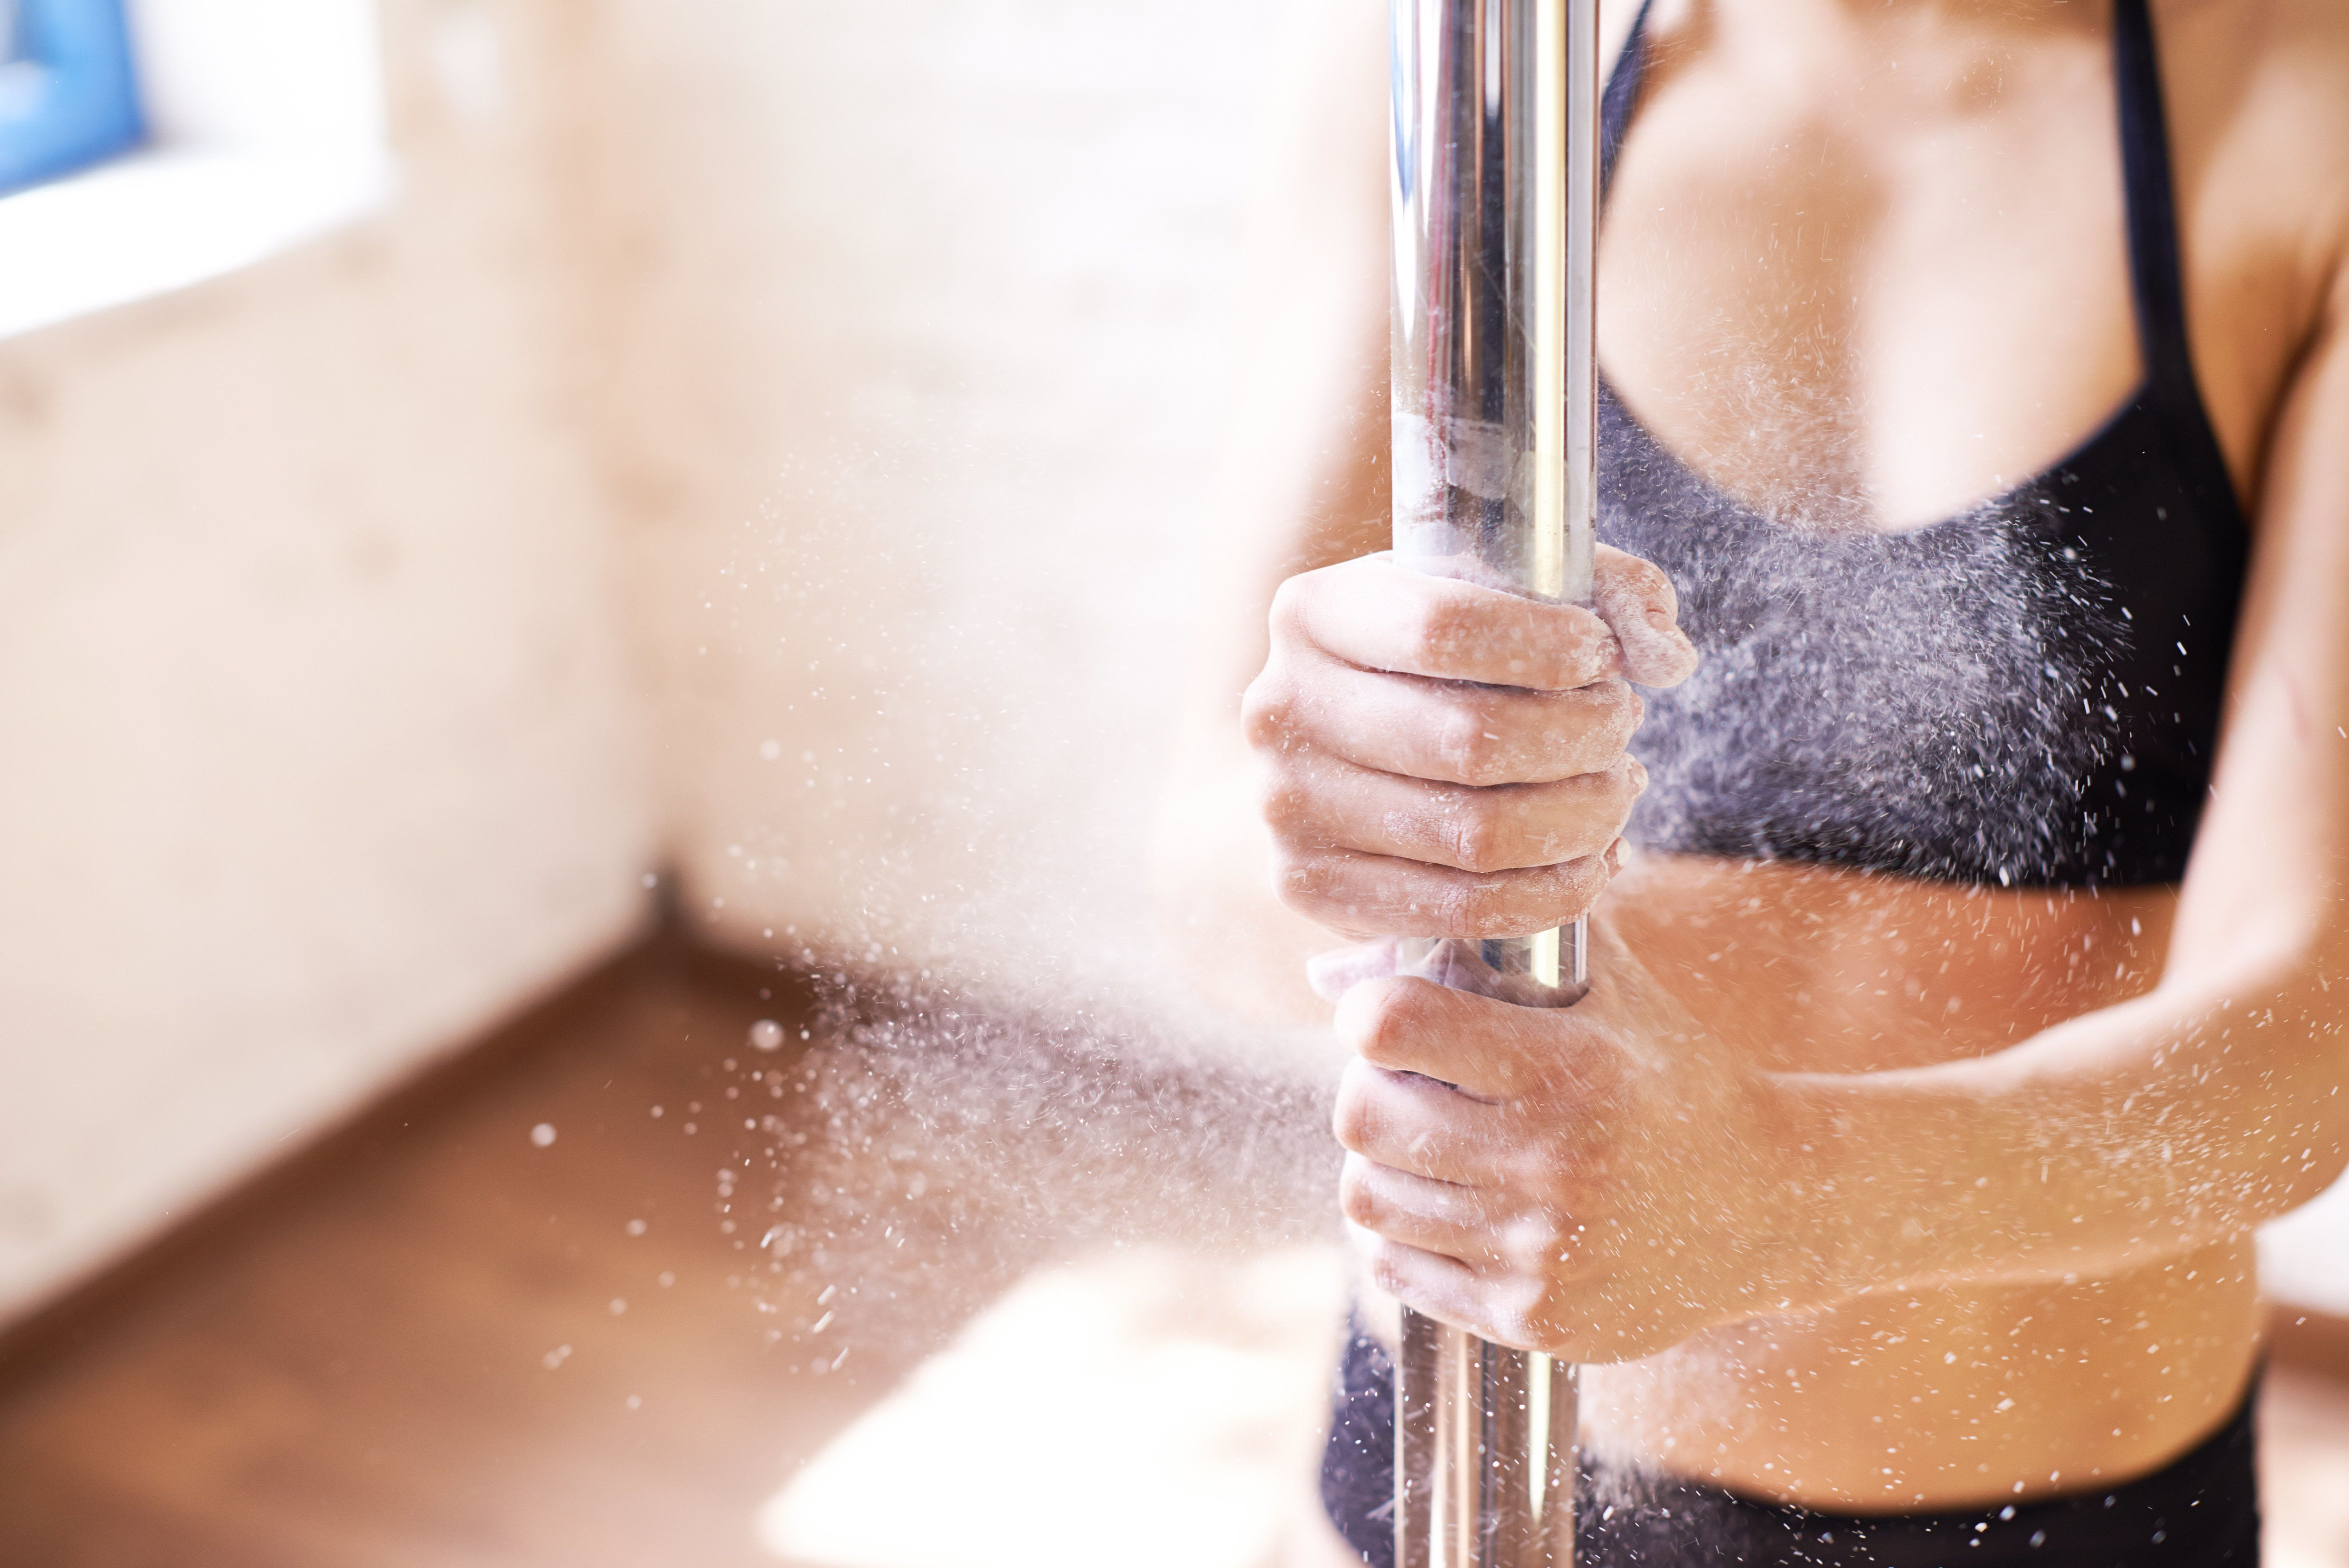 Should Pole Dancing Be Classed As A Sport? Two Women Go Head-To-Head On The